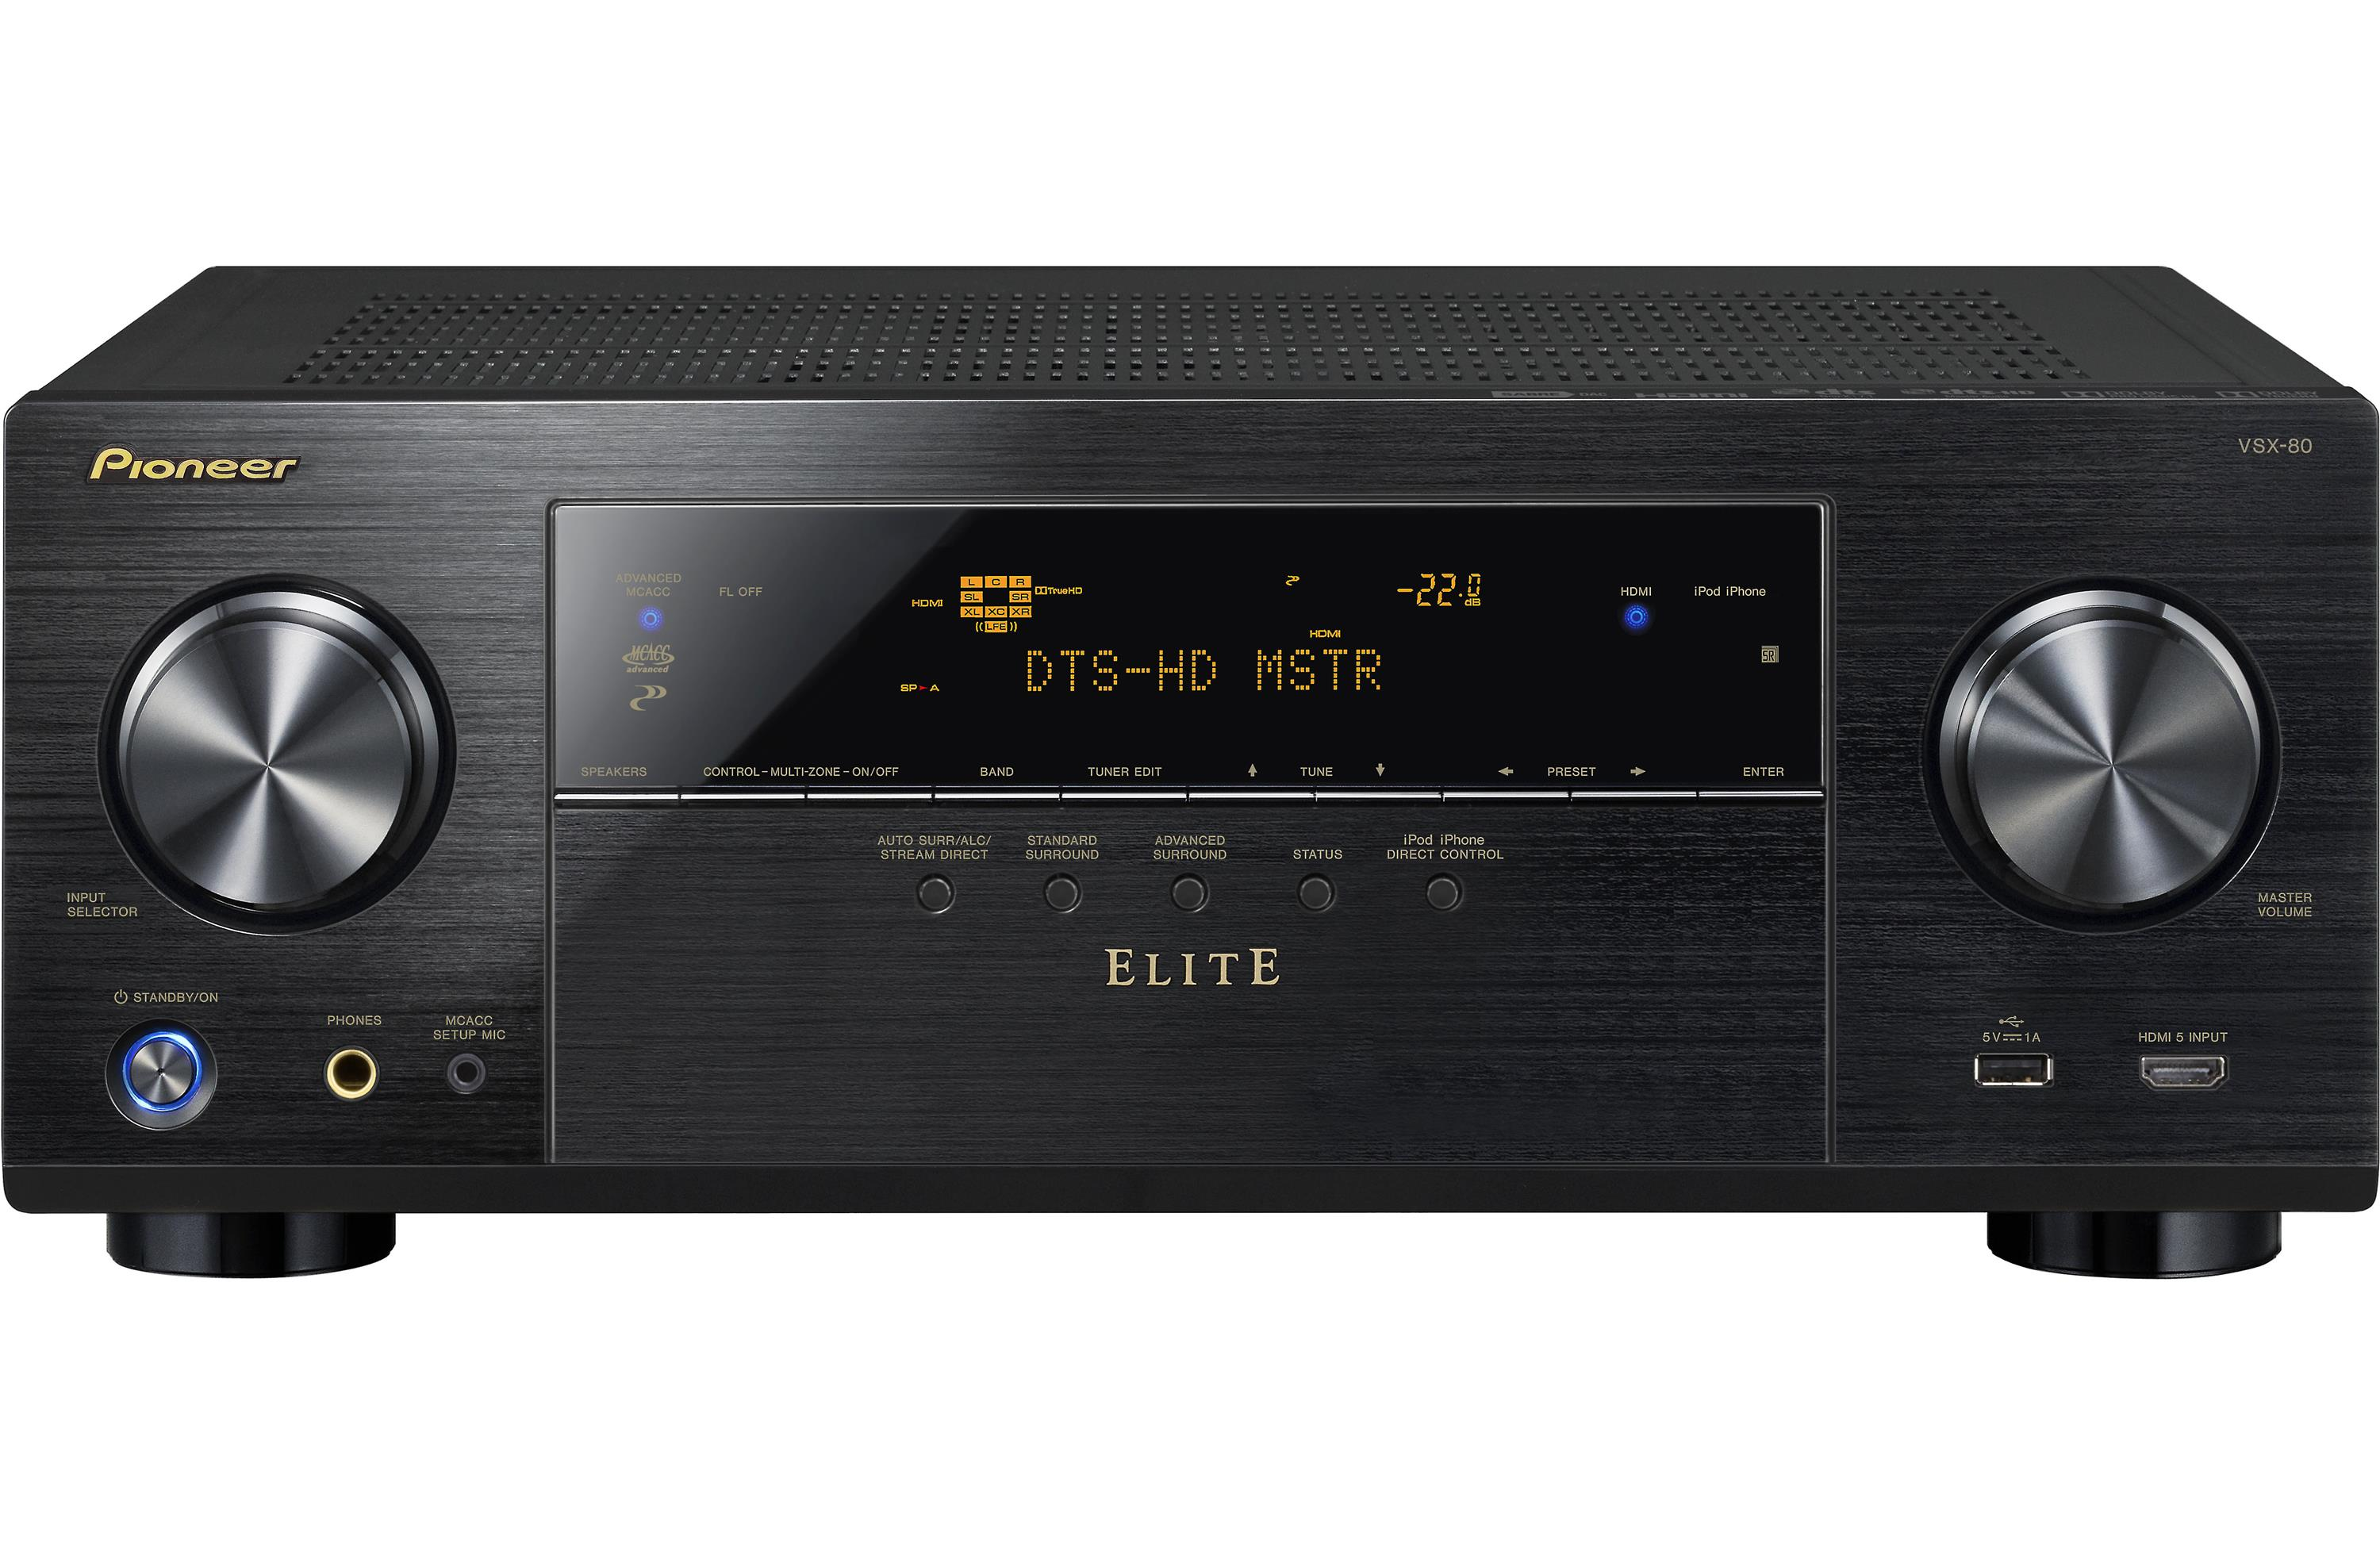 Pioneer Elite VSX-80 Review - Features and Specs | ZKelectronics